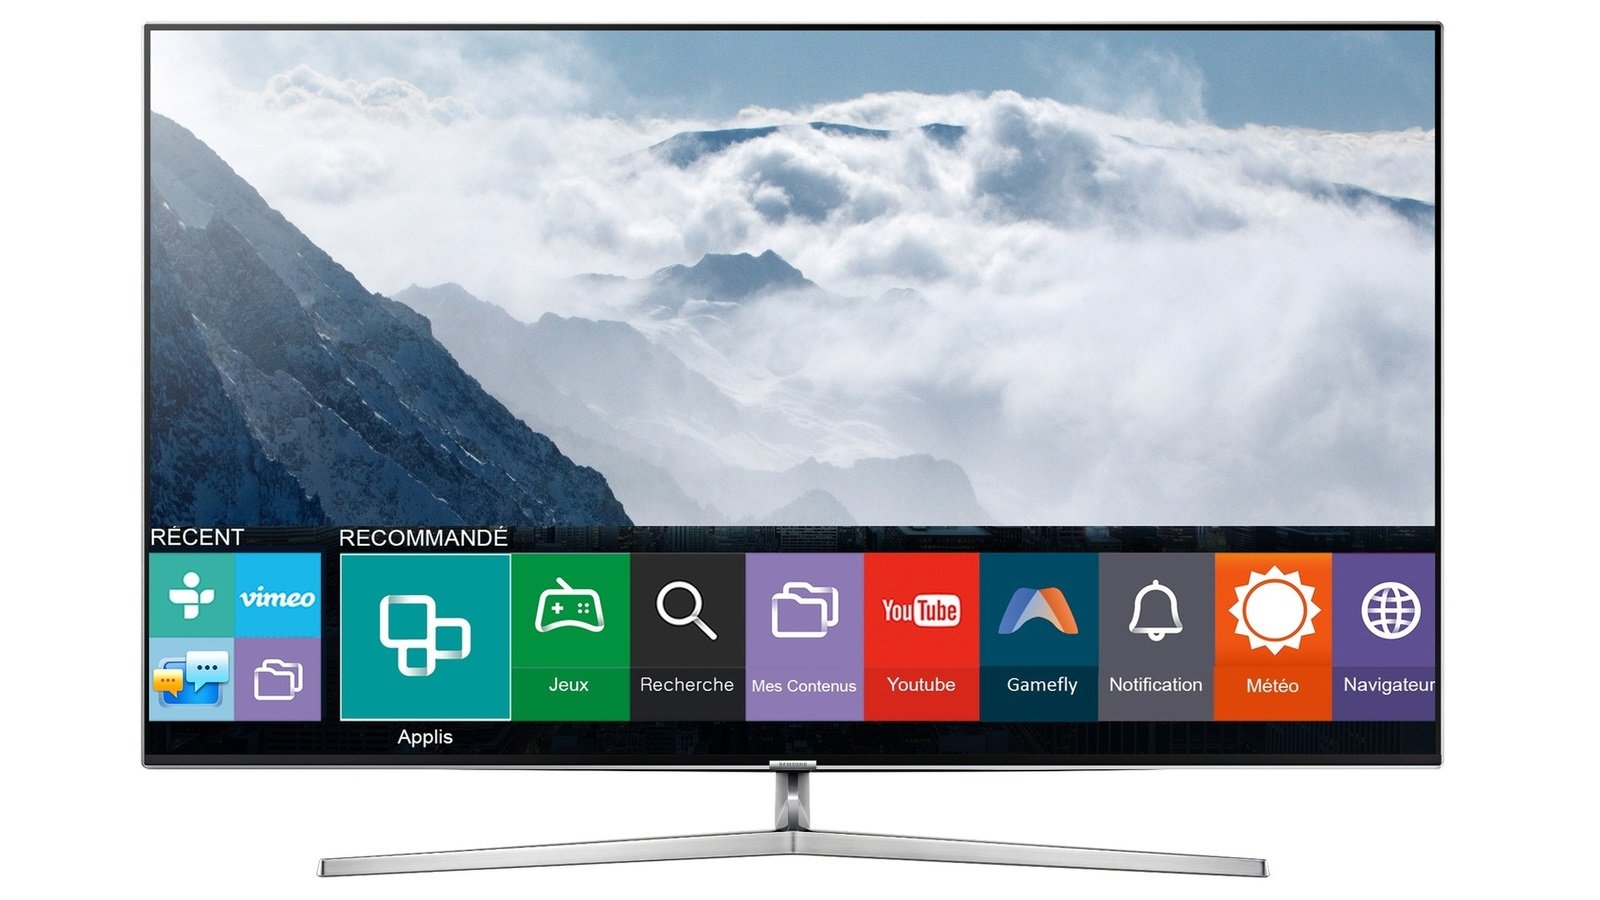 Samsung UE65KS8000 review: Serious 4K HDR performance for